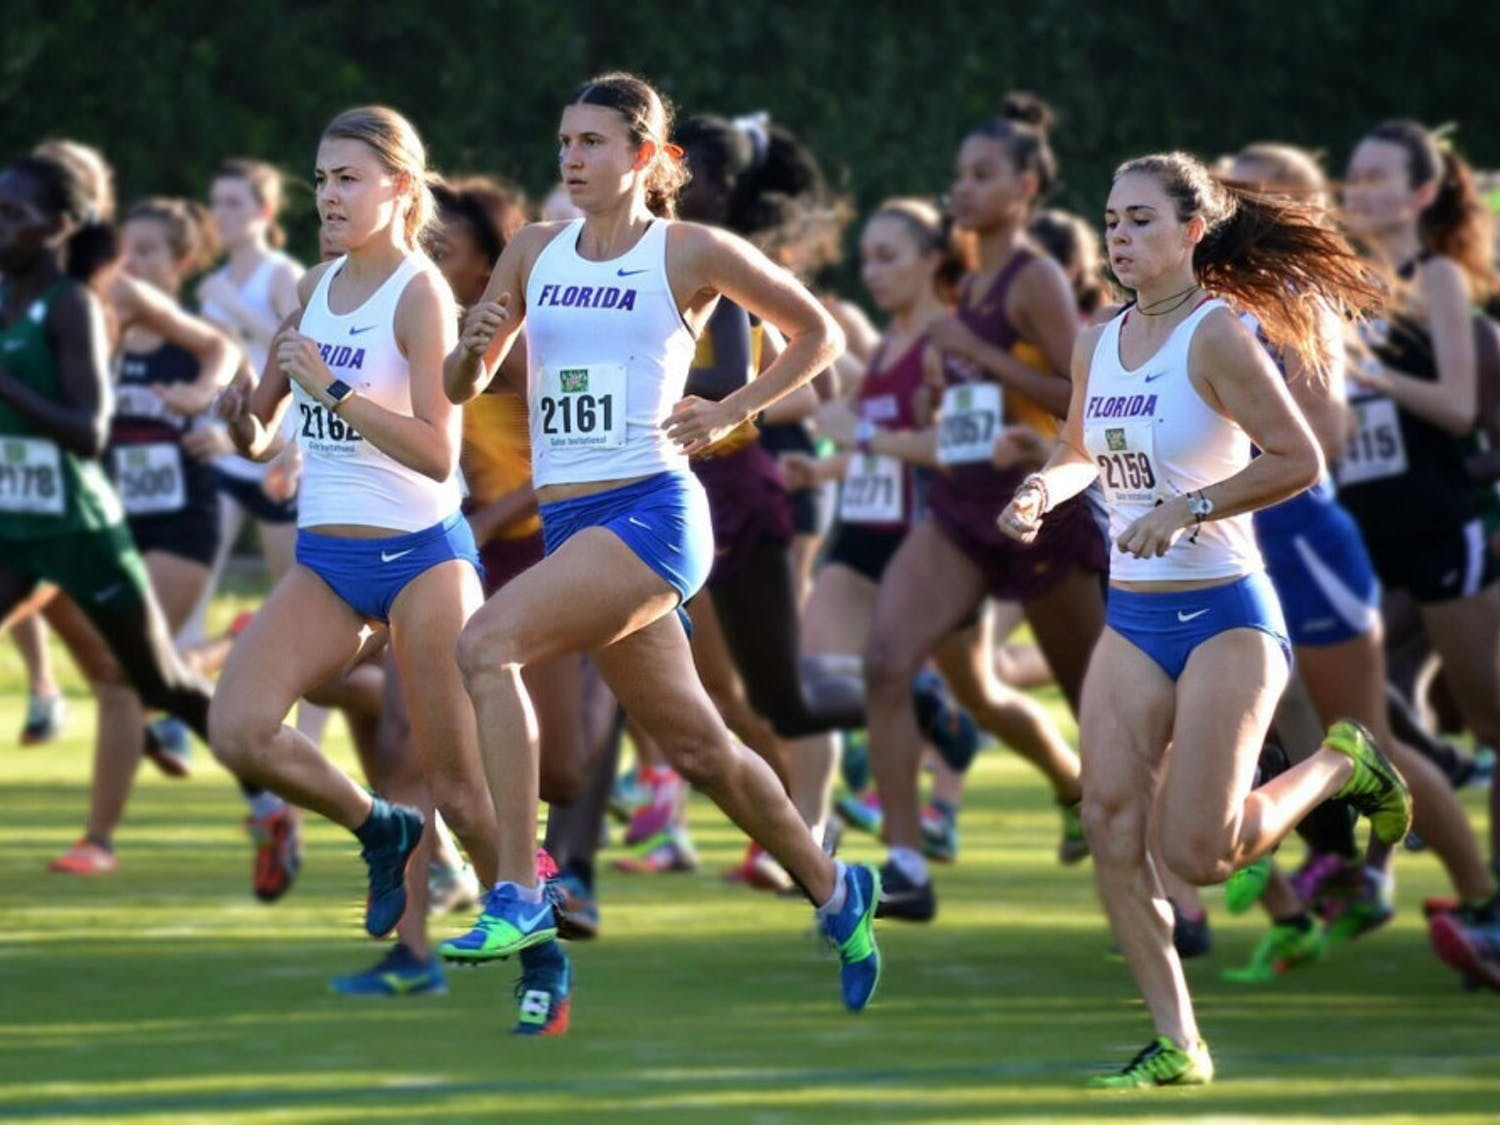 Florida cross country revealed its five-meet 2021 schedule on Wednesday.